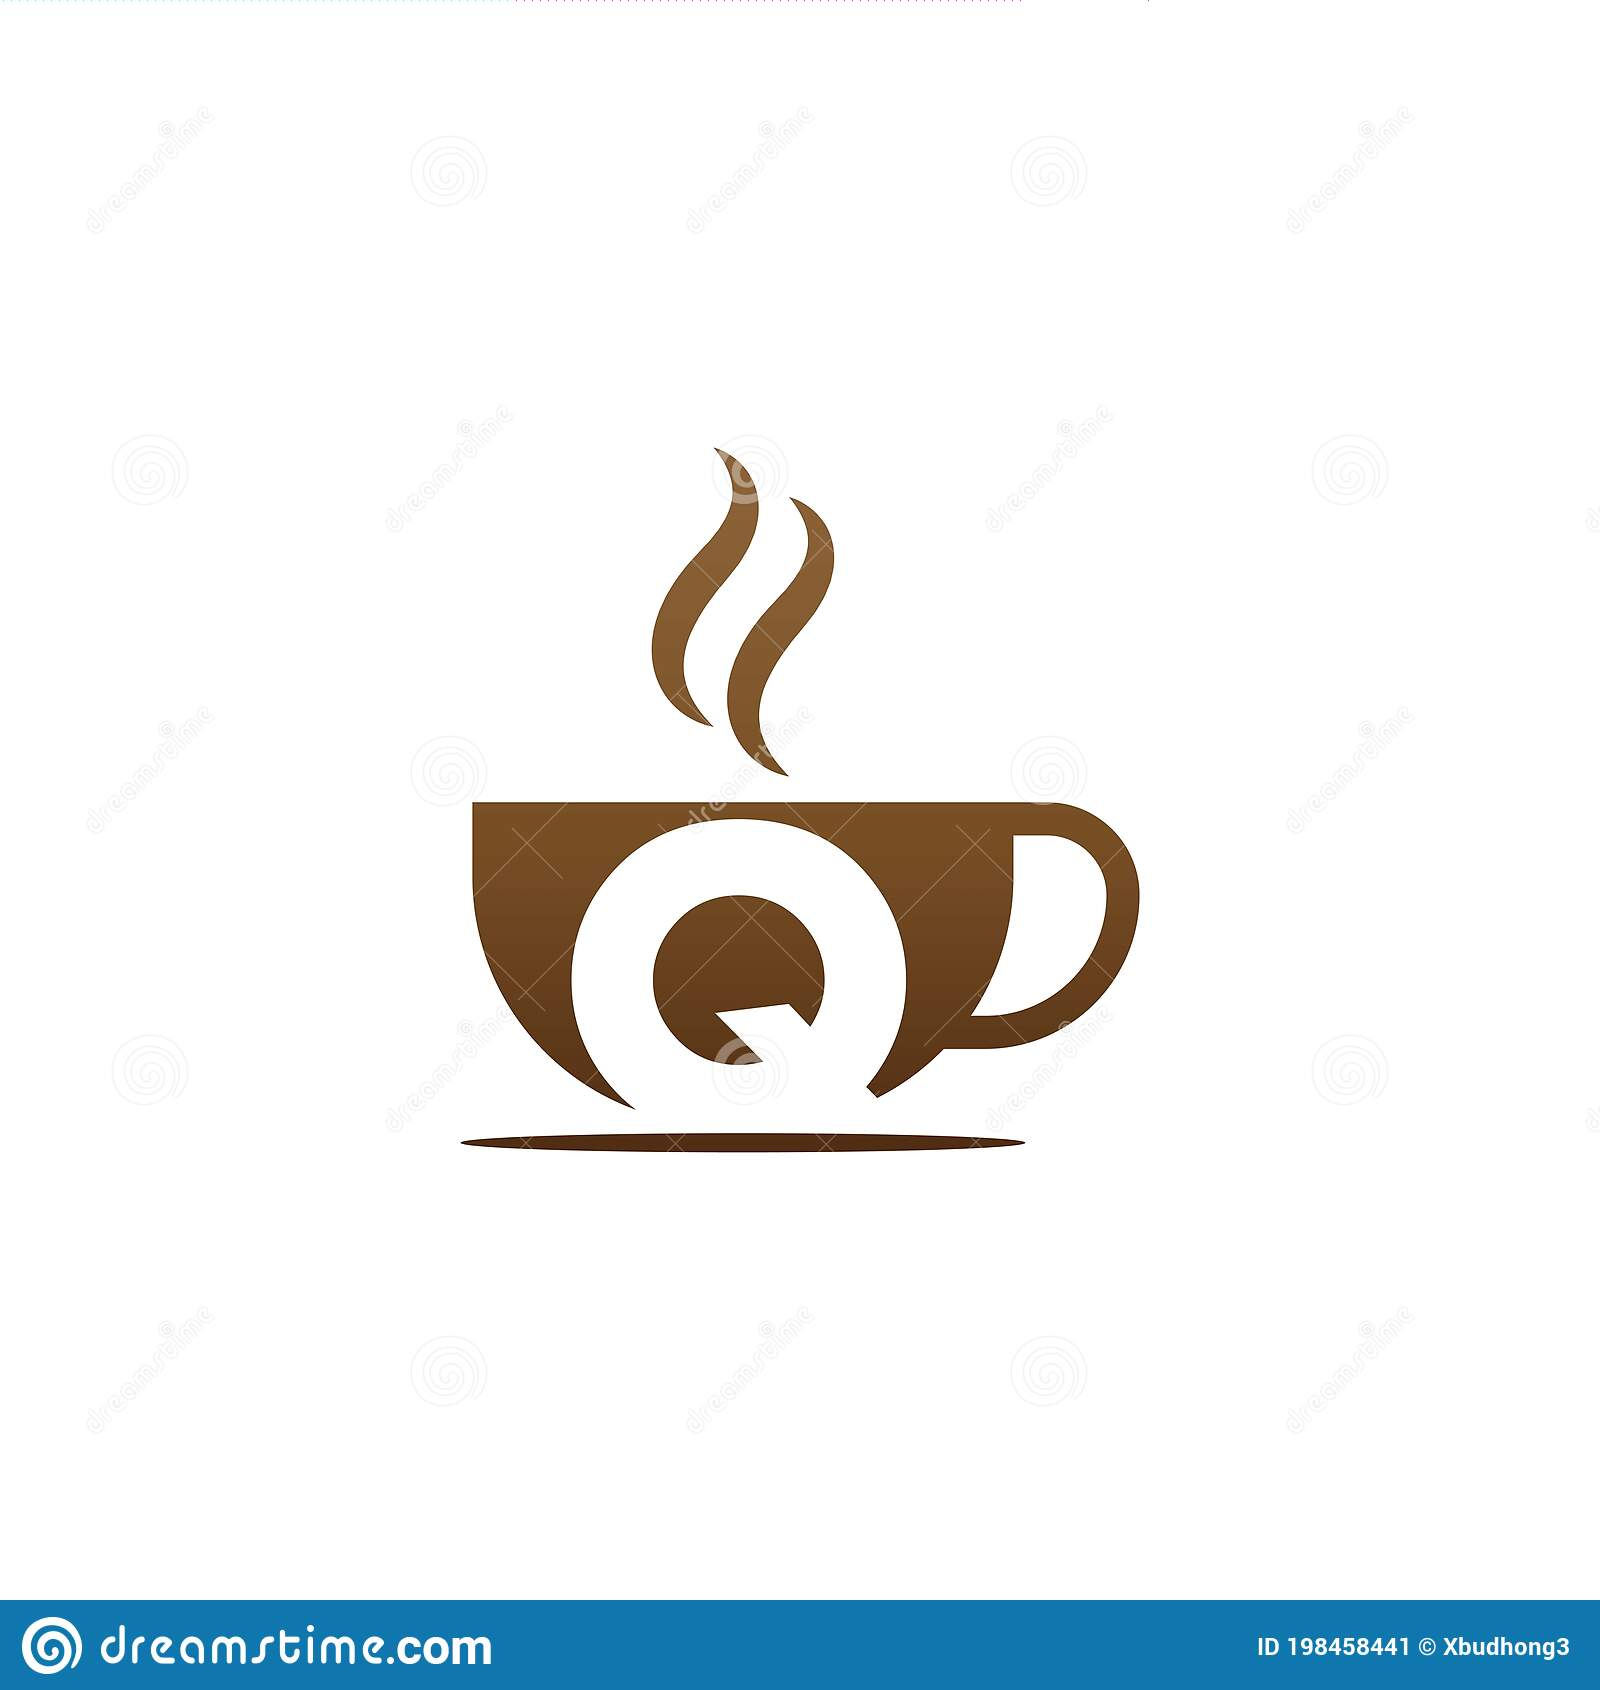 Coffee Cup Icon Design Letter Q Logo Stock Vector Illustration Of Morning Decoration 198458441